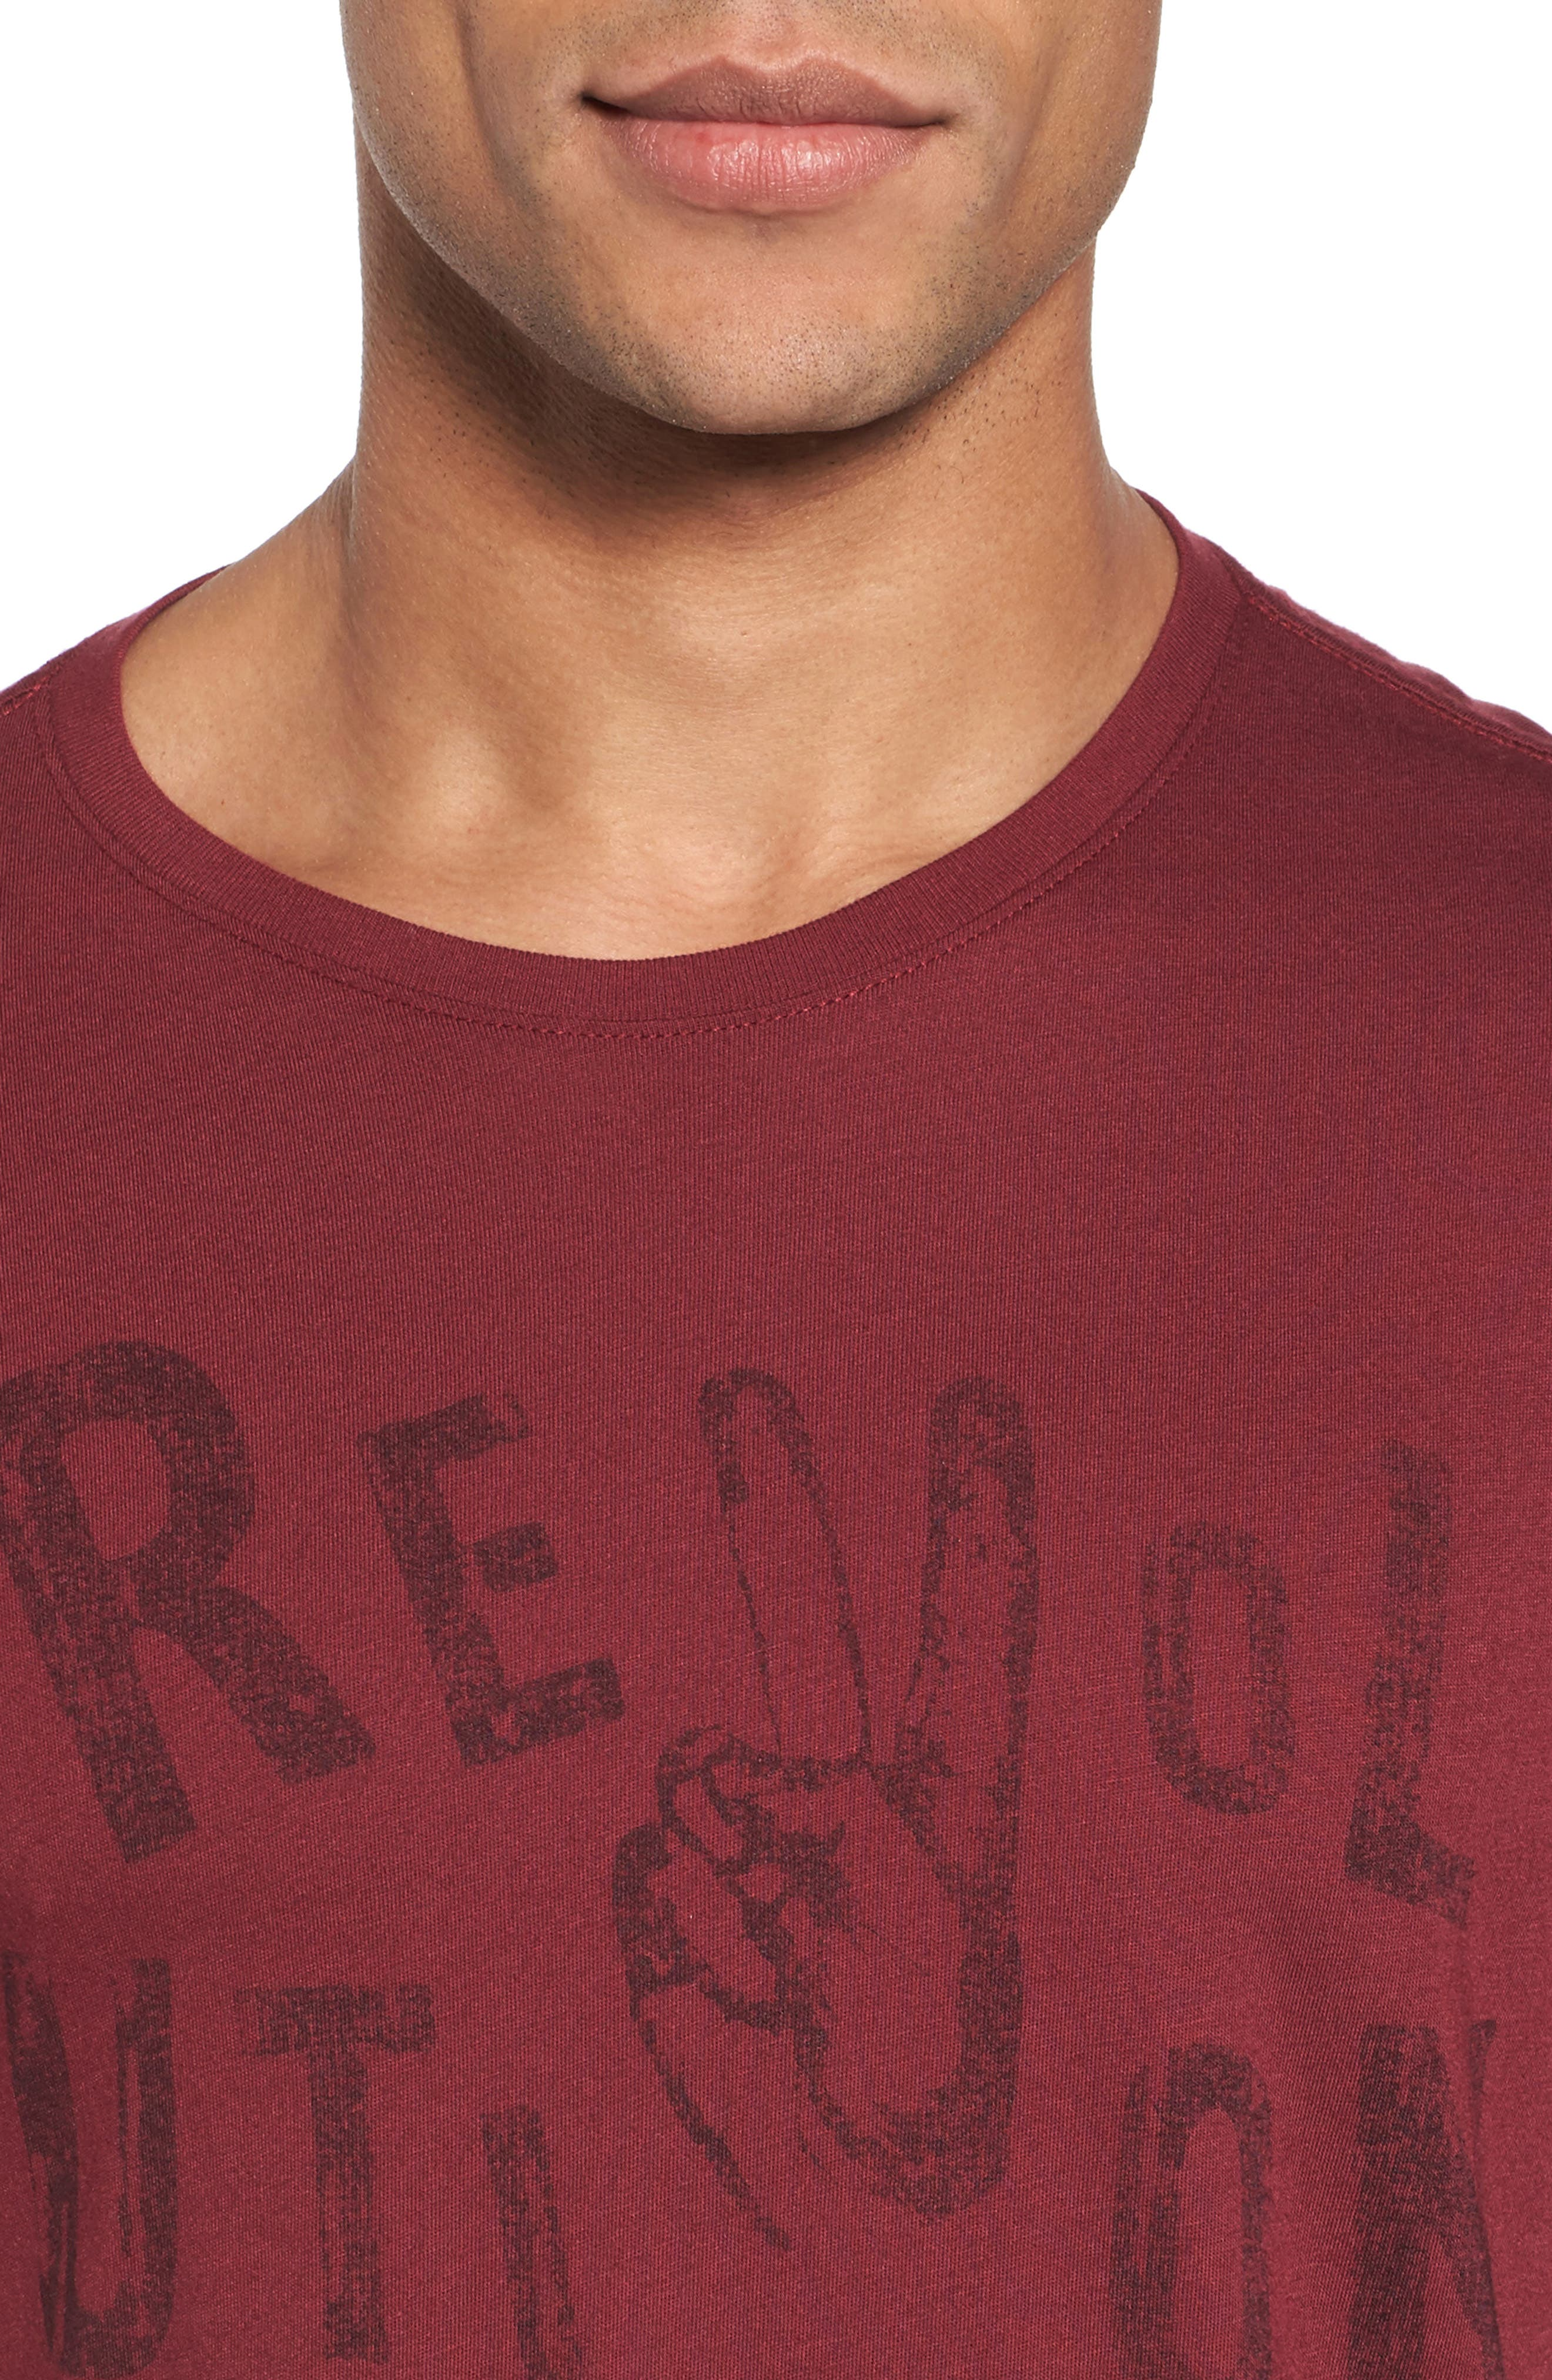 Revolution Graphic T-Shirt,                             Alternate thumbnail 4, color,                             Oxblood